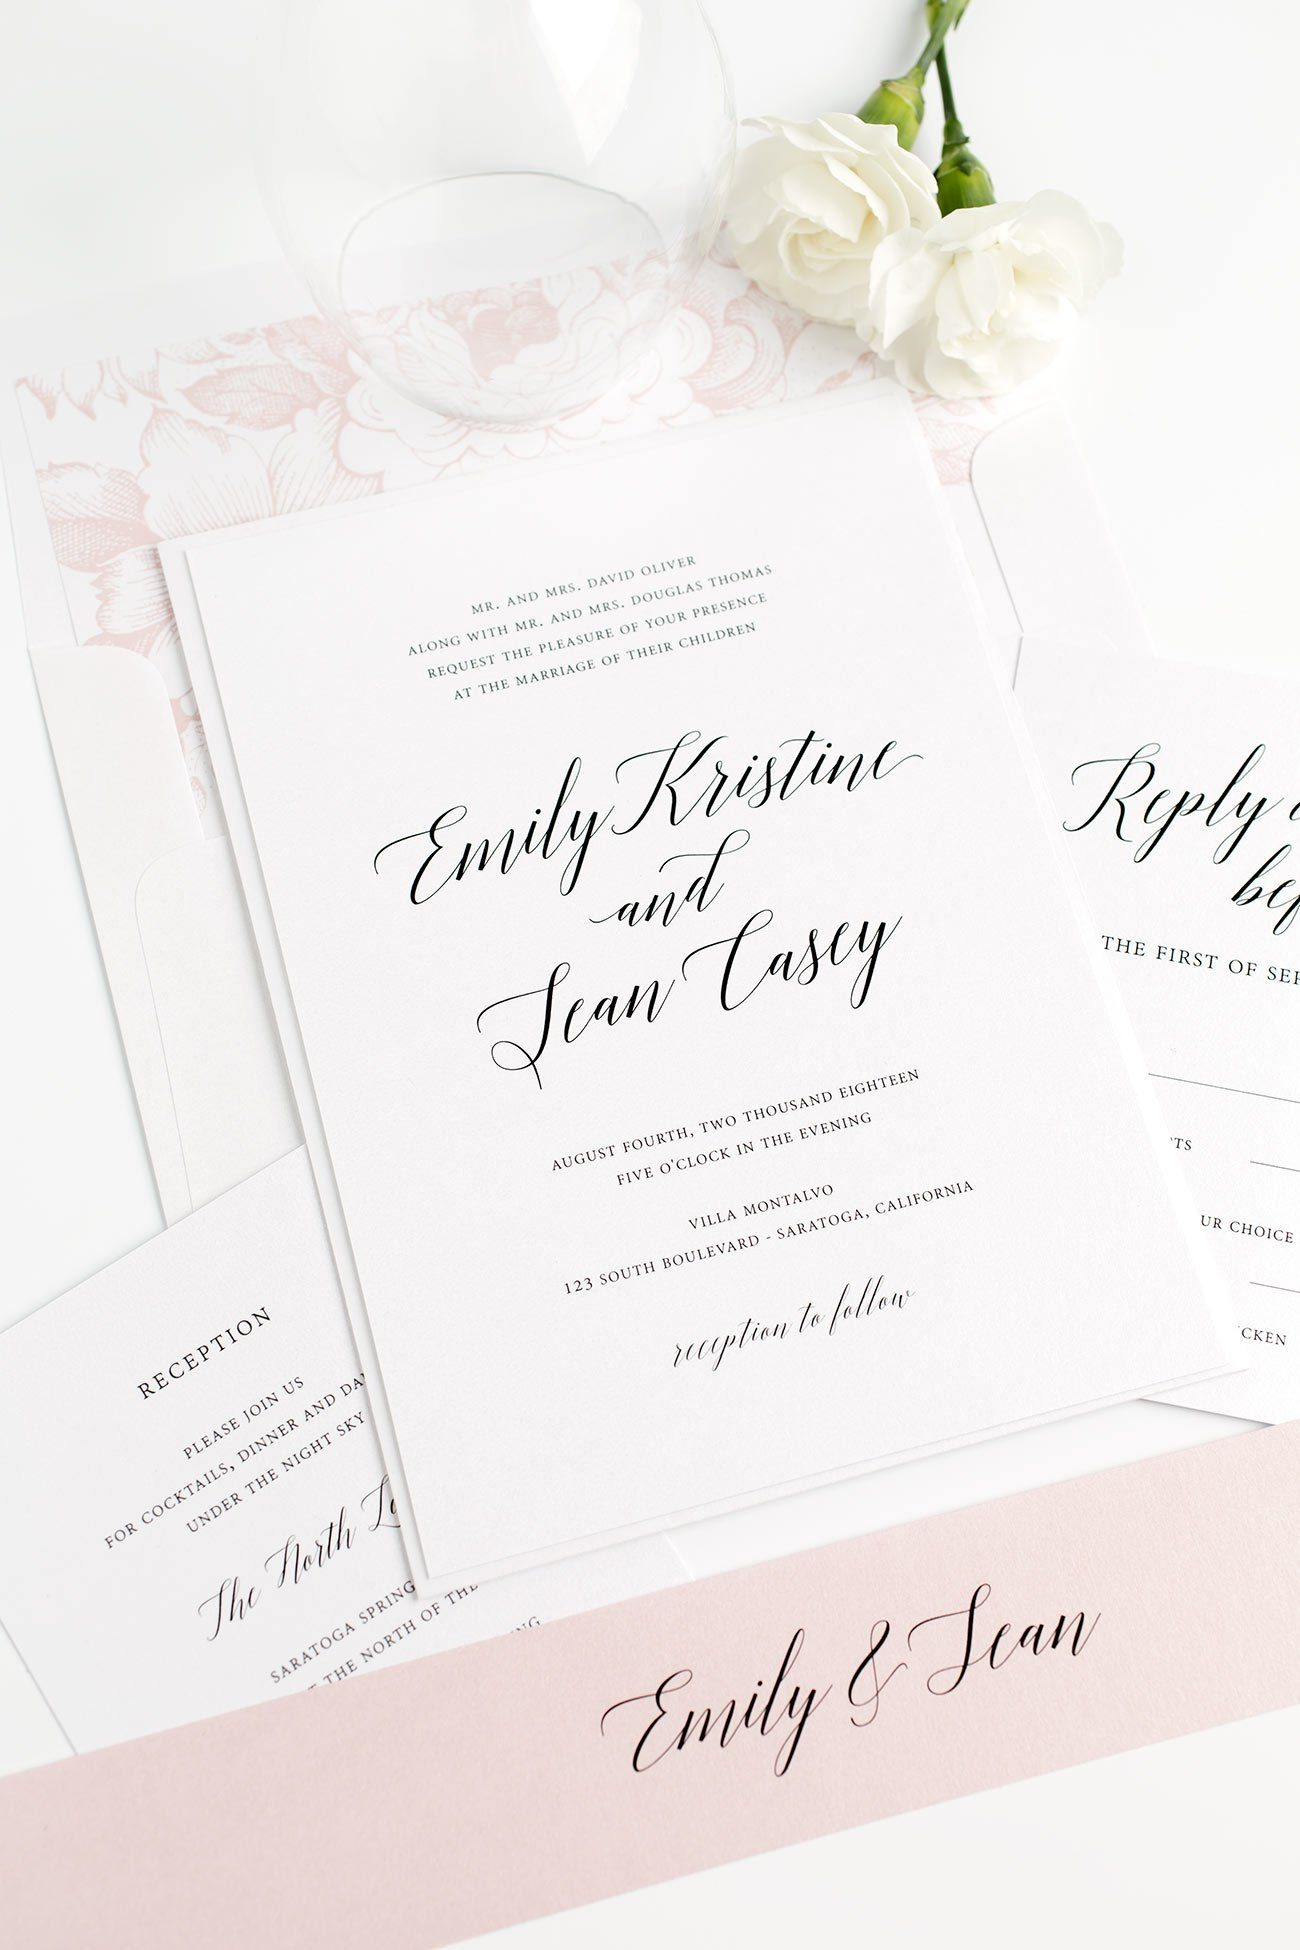 Garden Inspired Calligraphy Wedding Invitations in Blush Pink with a Floral Envelope Liner